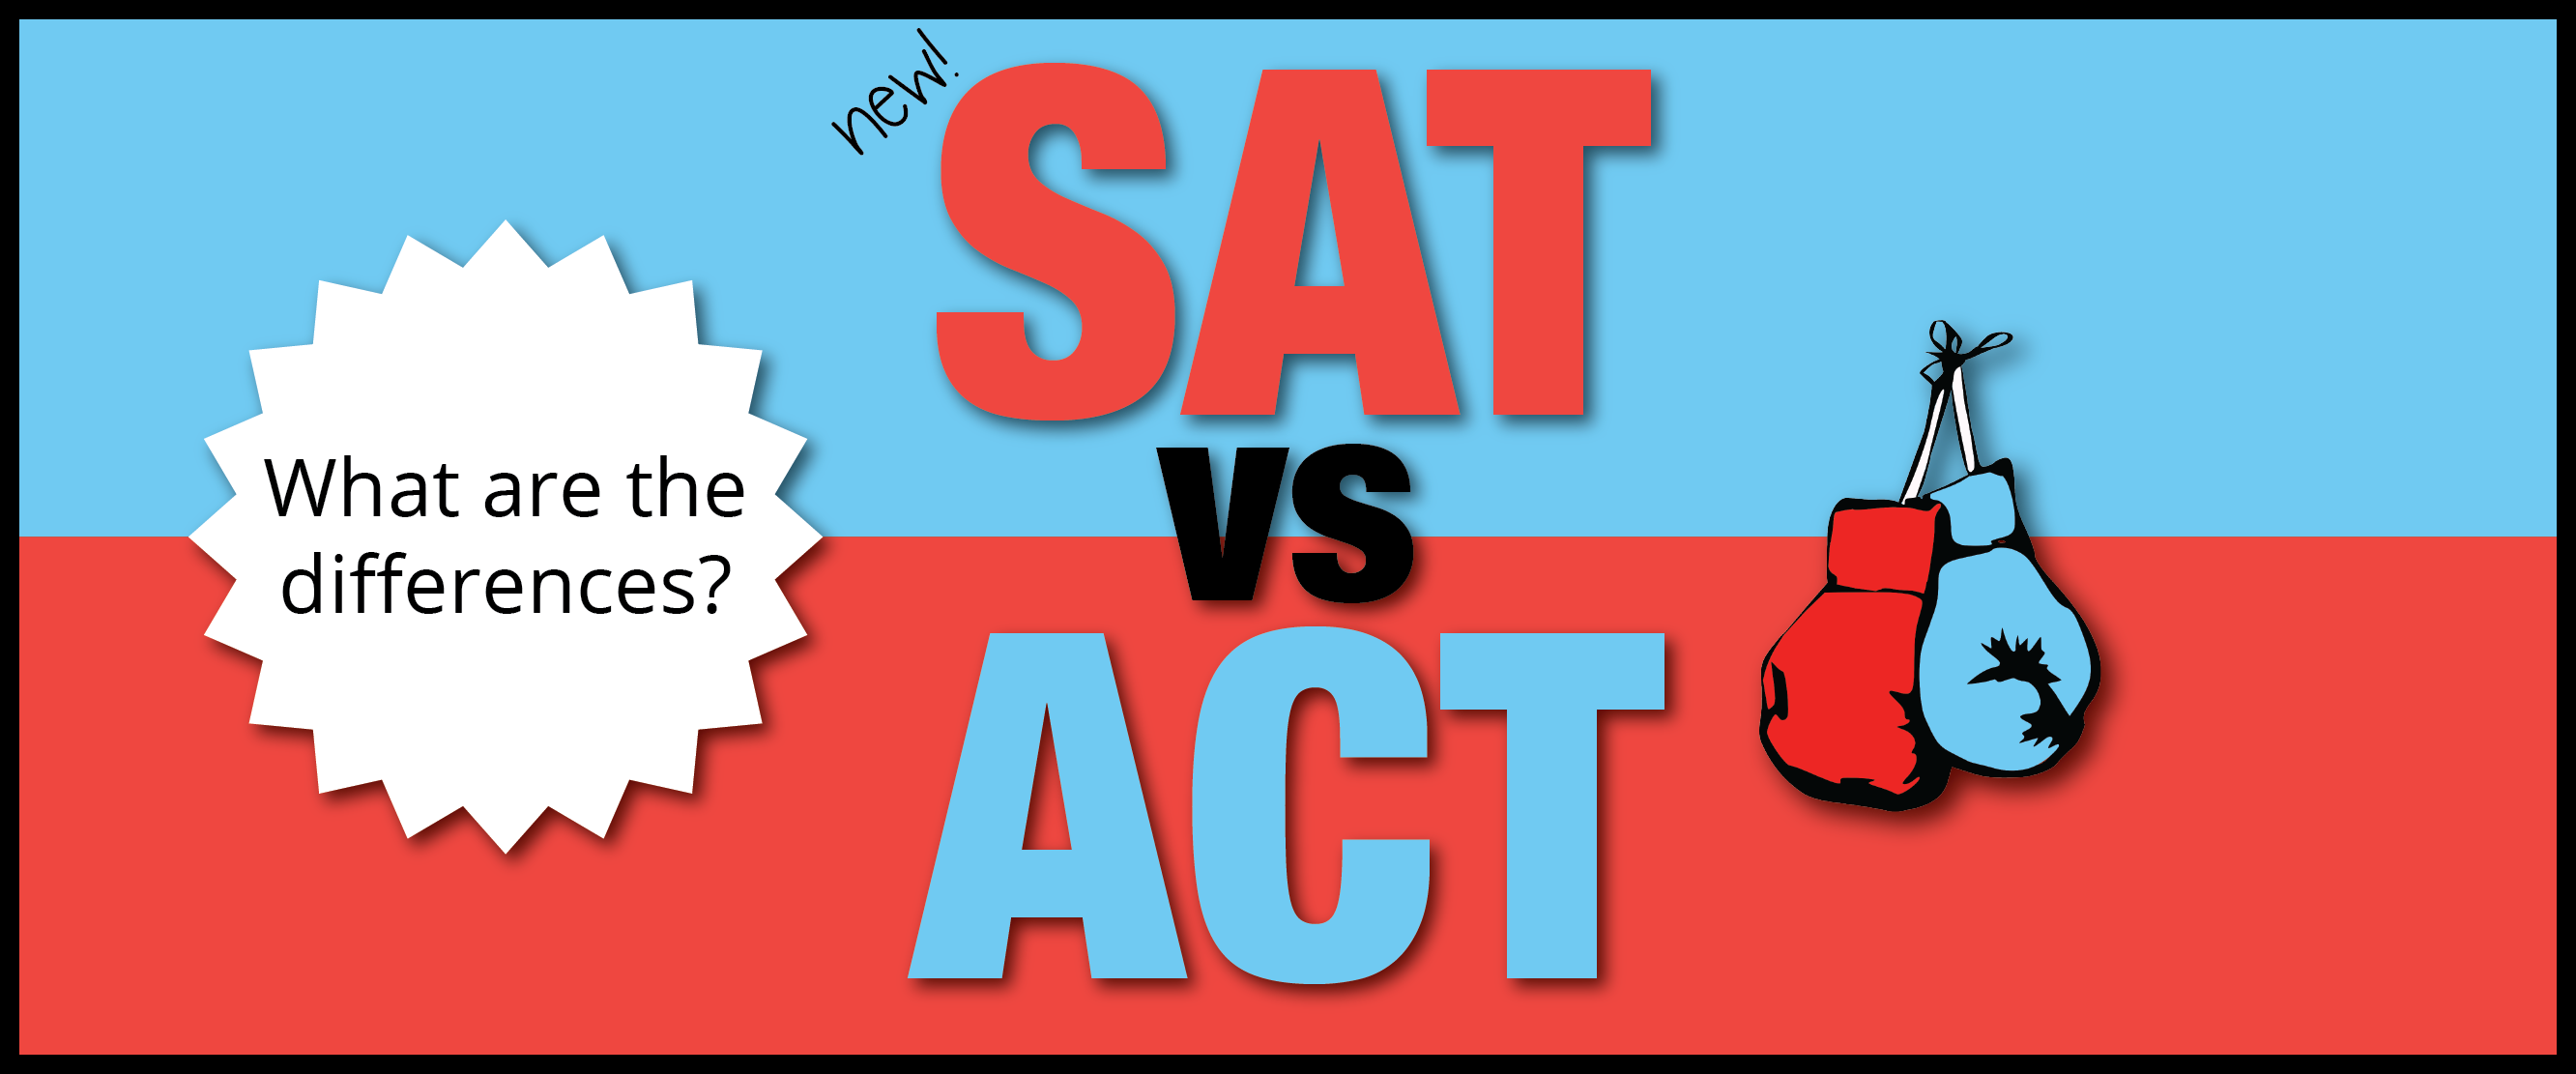 SAT: New SAT Vs. ACT [infographic]